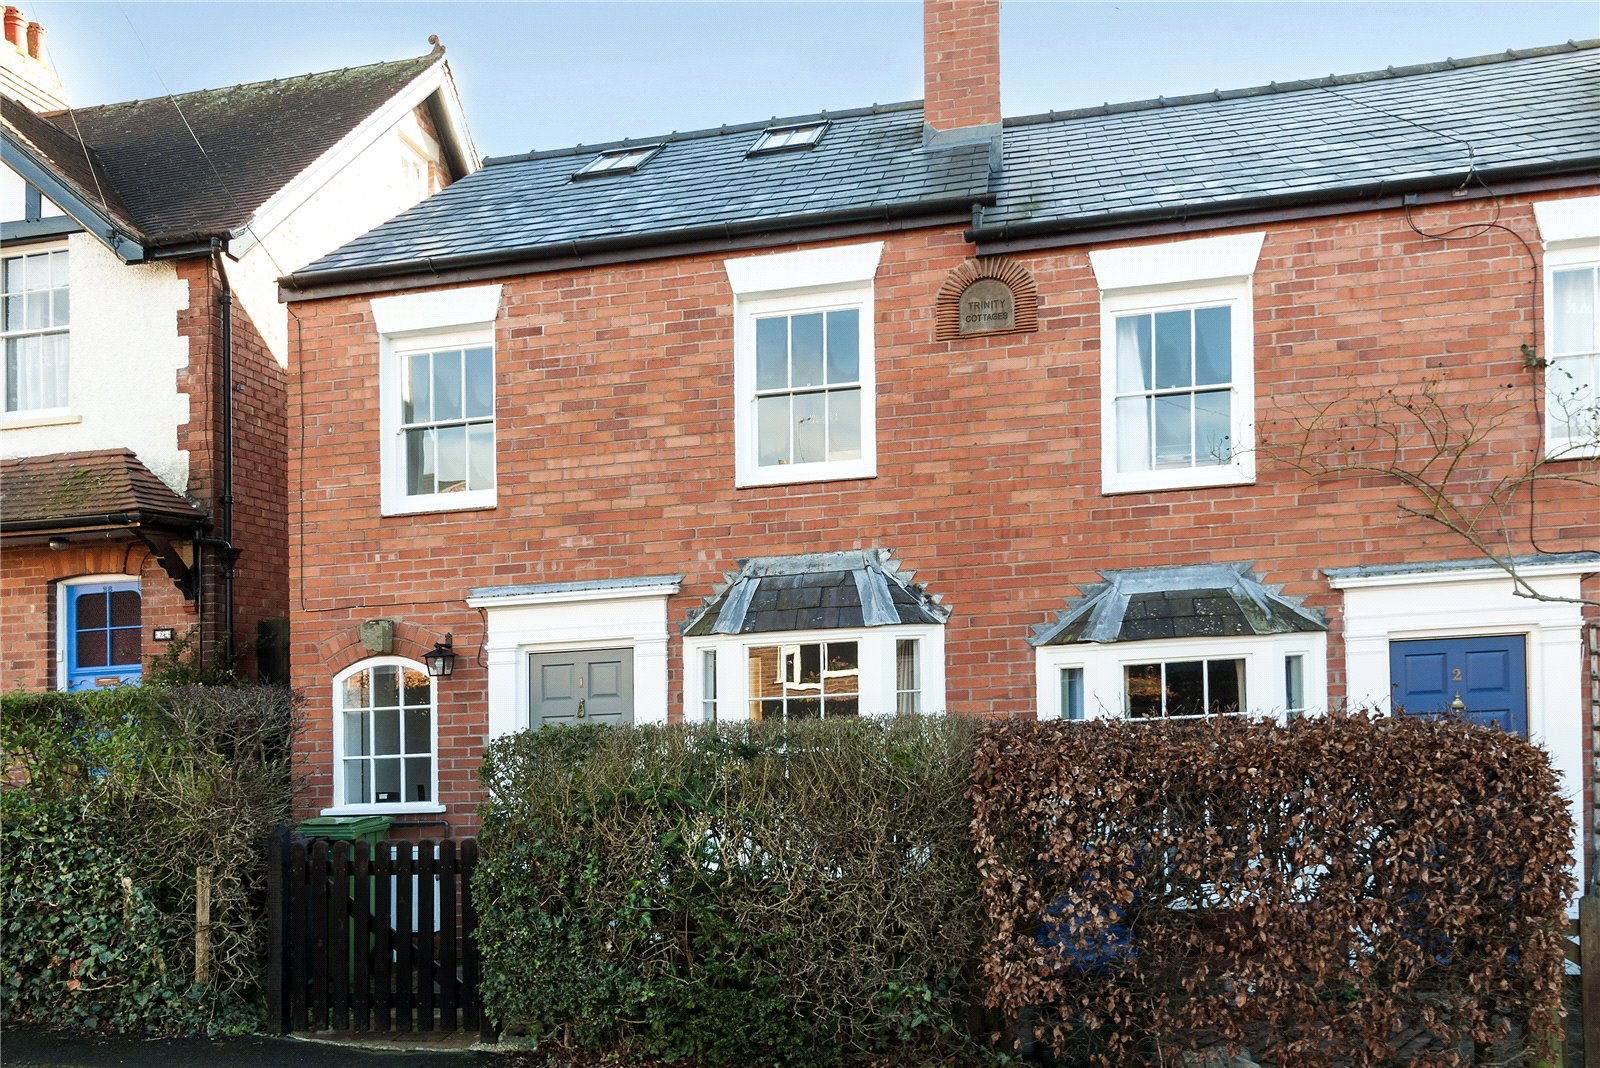 2 Bedrooms End Of Terrace House for sale in 1 Trinity Cottages, Julian Road, Ludlow, Shropshire, SY8